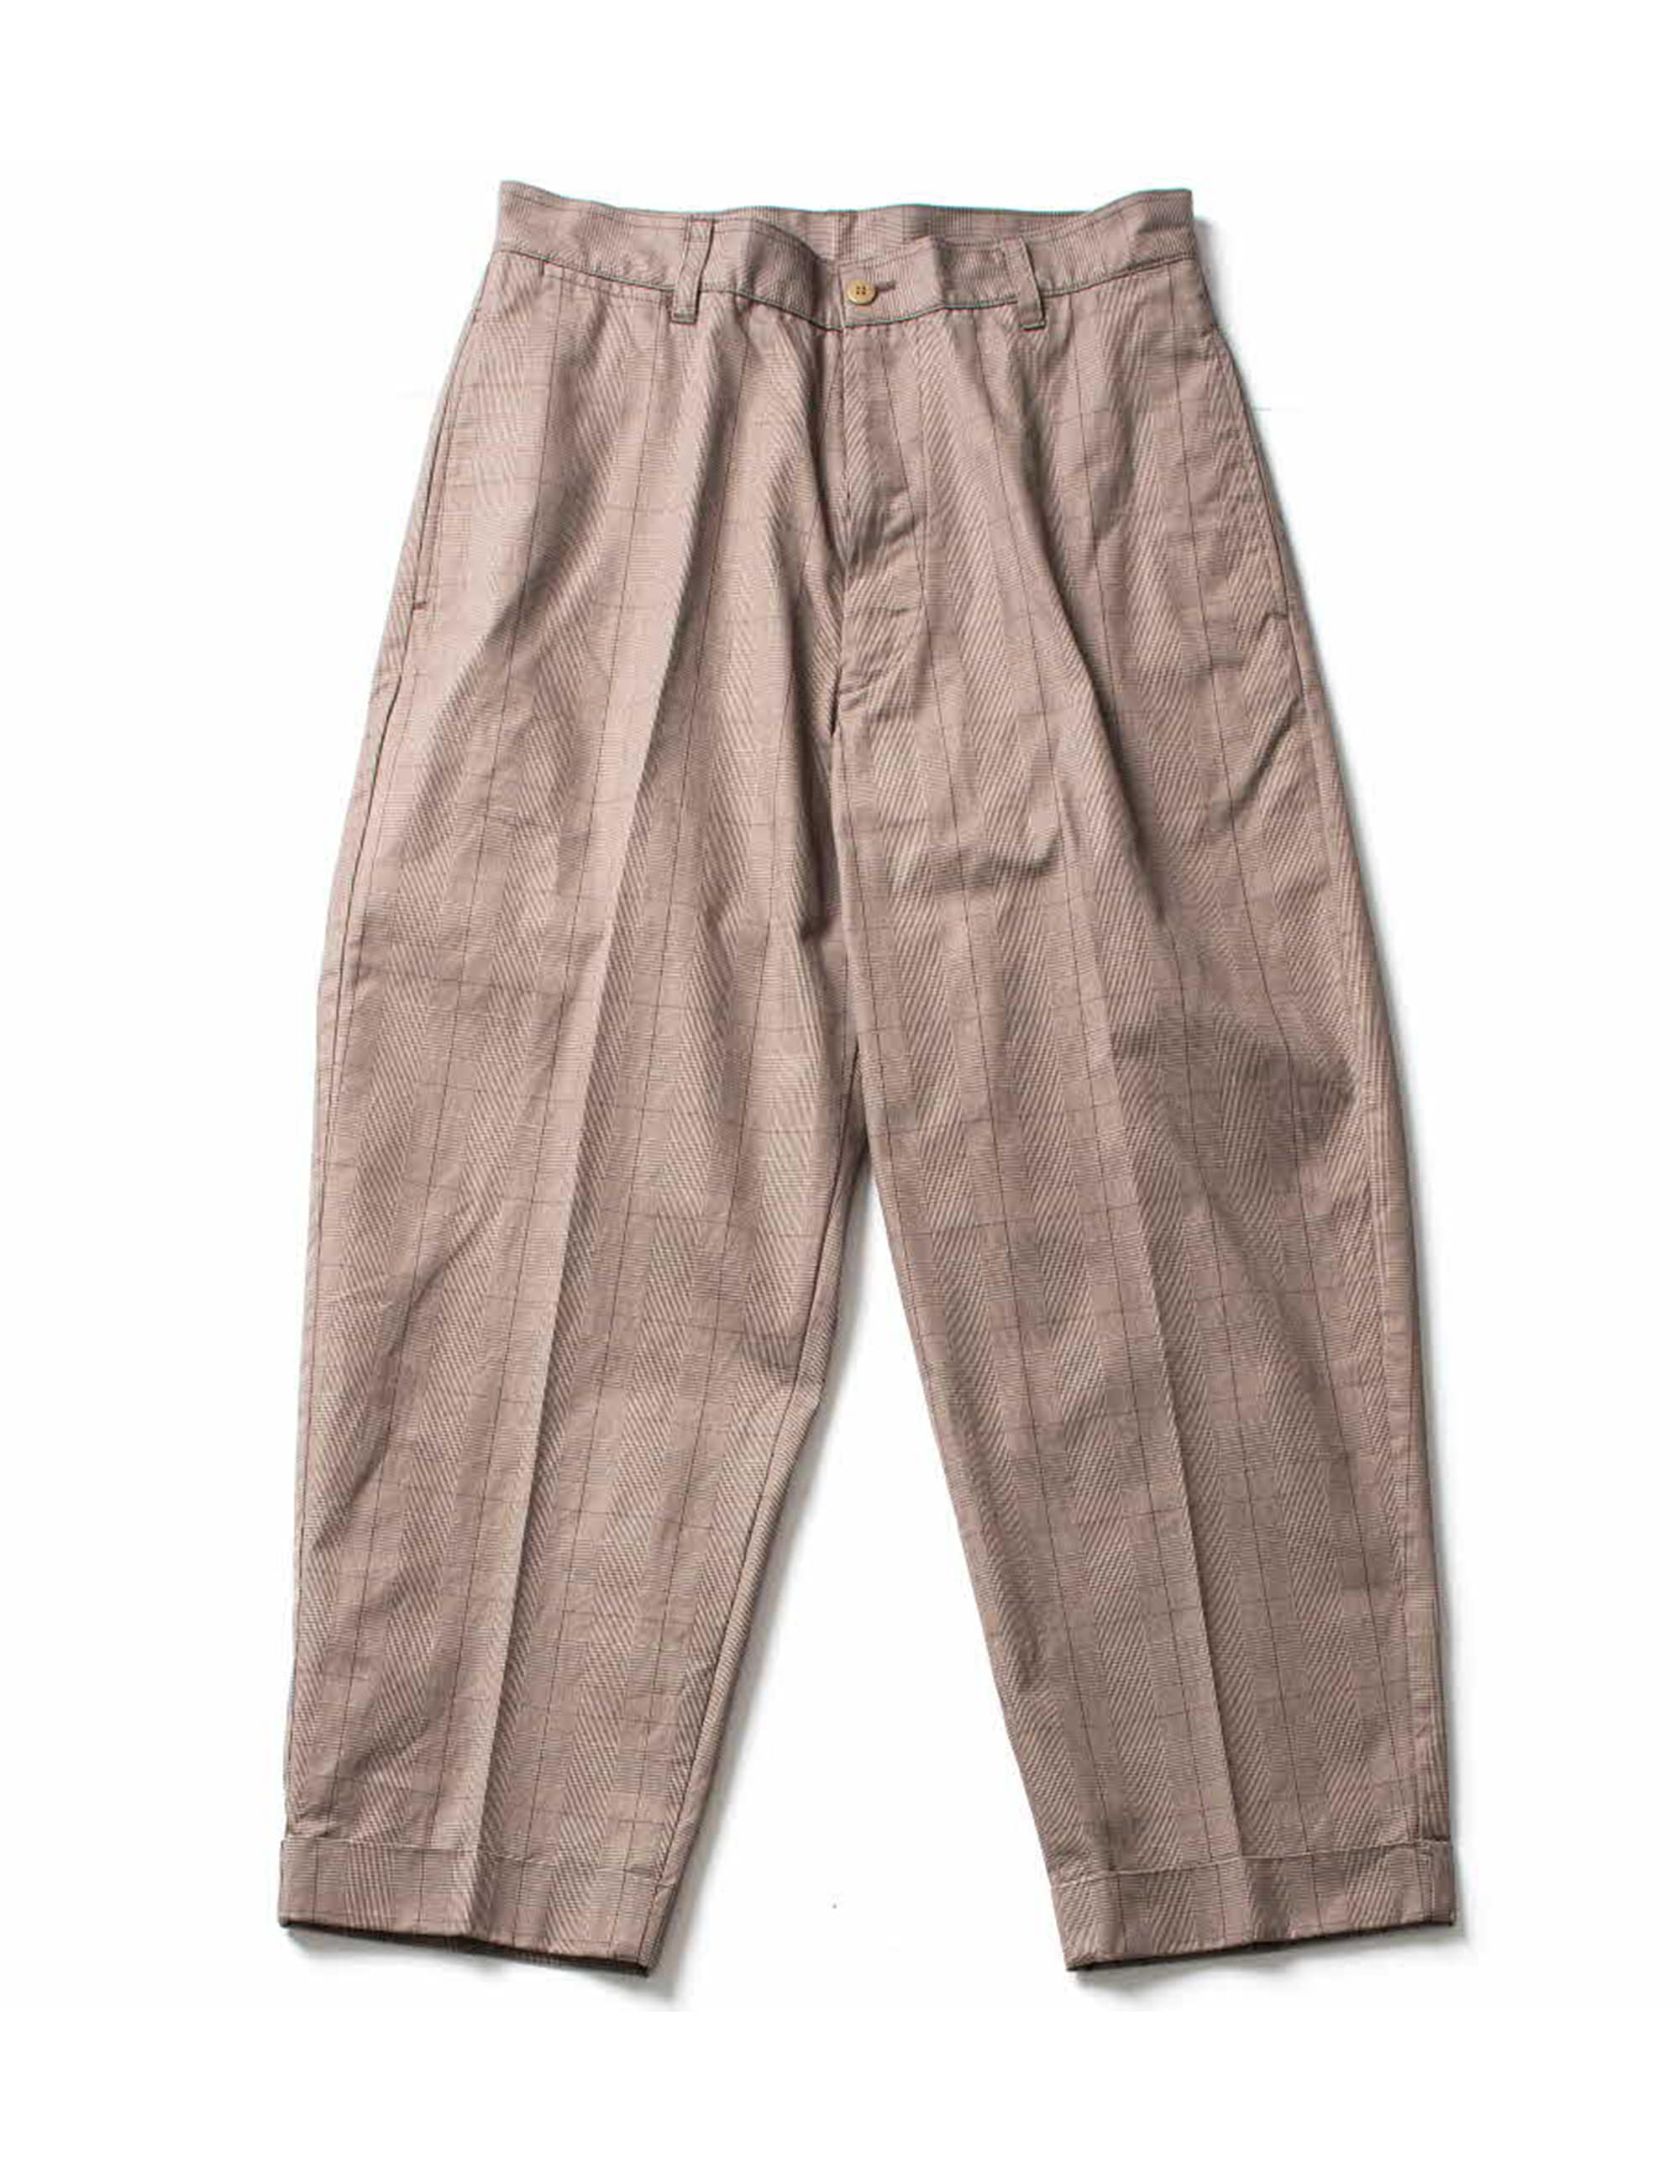 GRENCHECK HILTS PANTS_BROWN